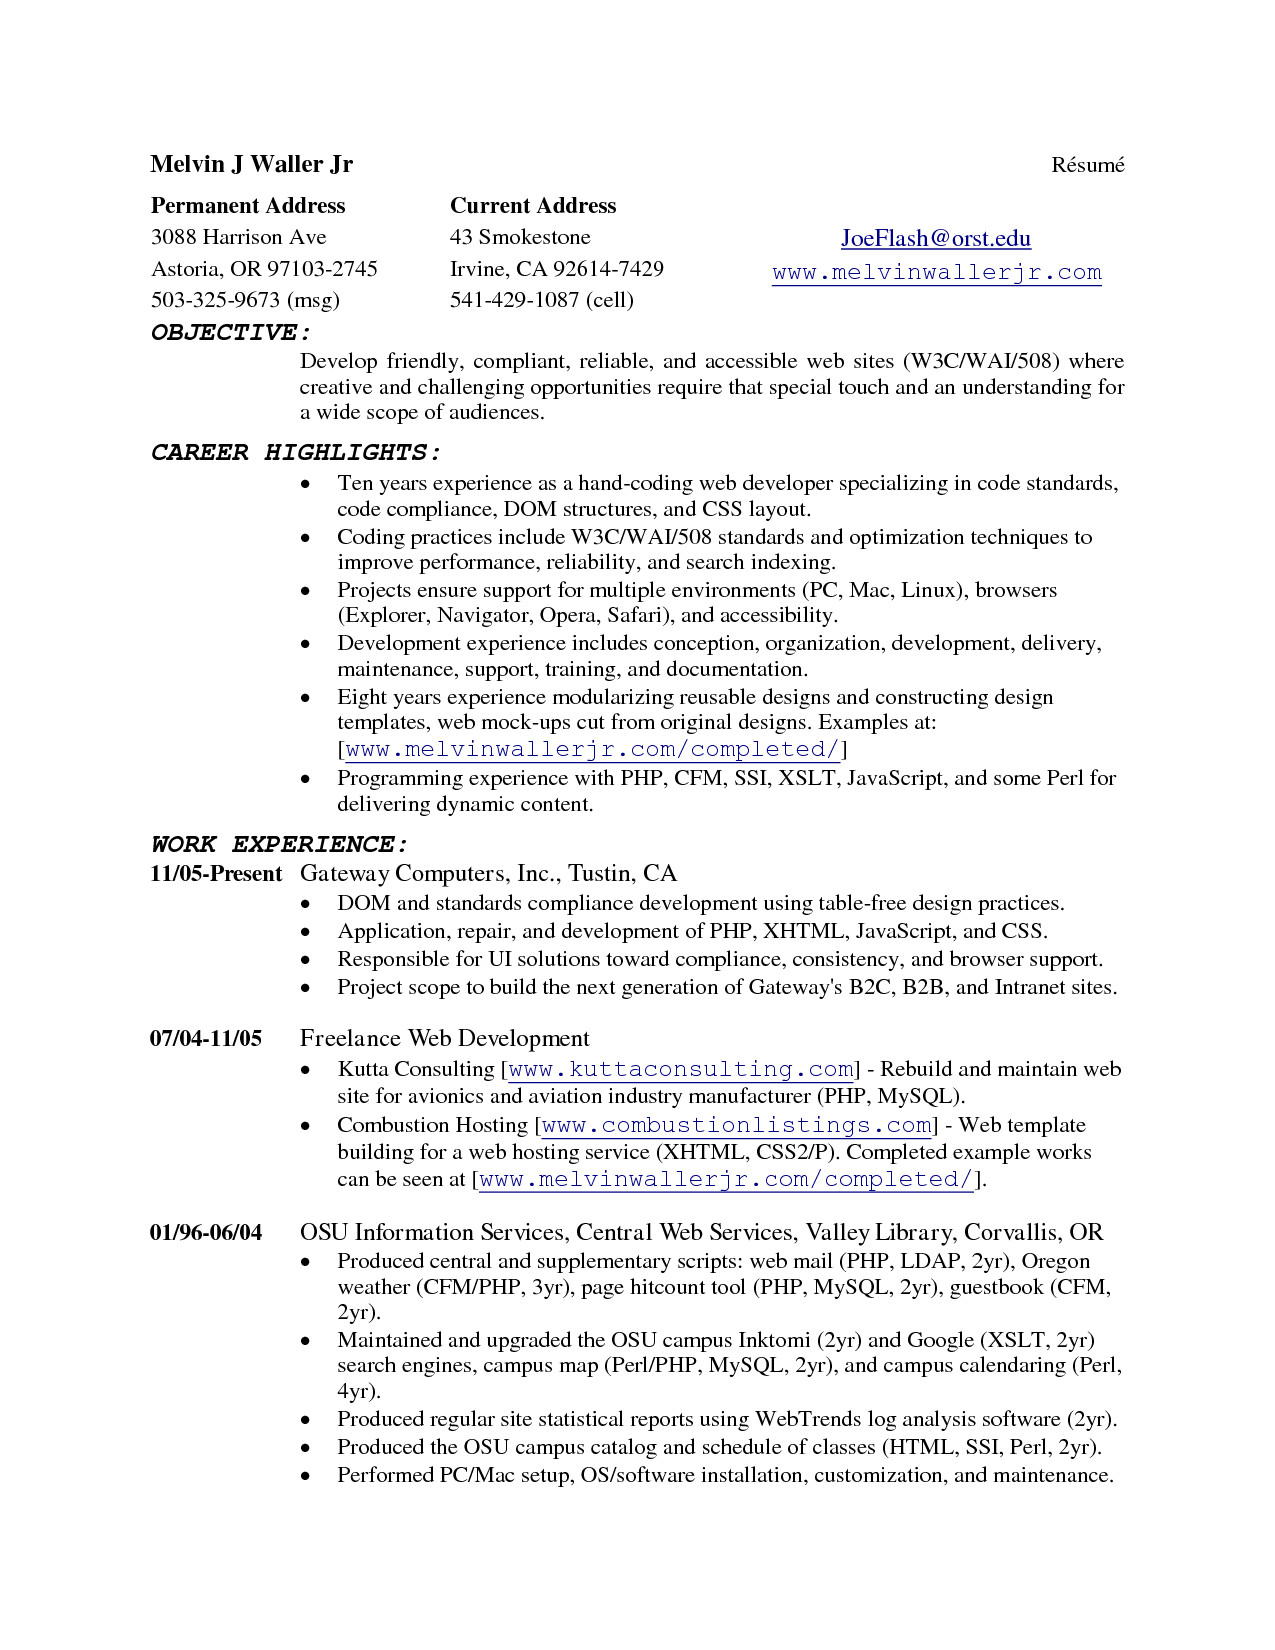 Openoffice Cover Letter Template - Writer Resume Template Download Sample Technical Resume Diplomatic